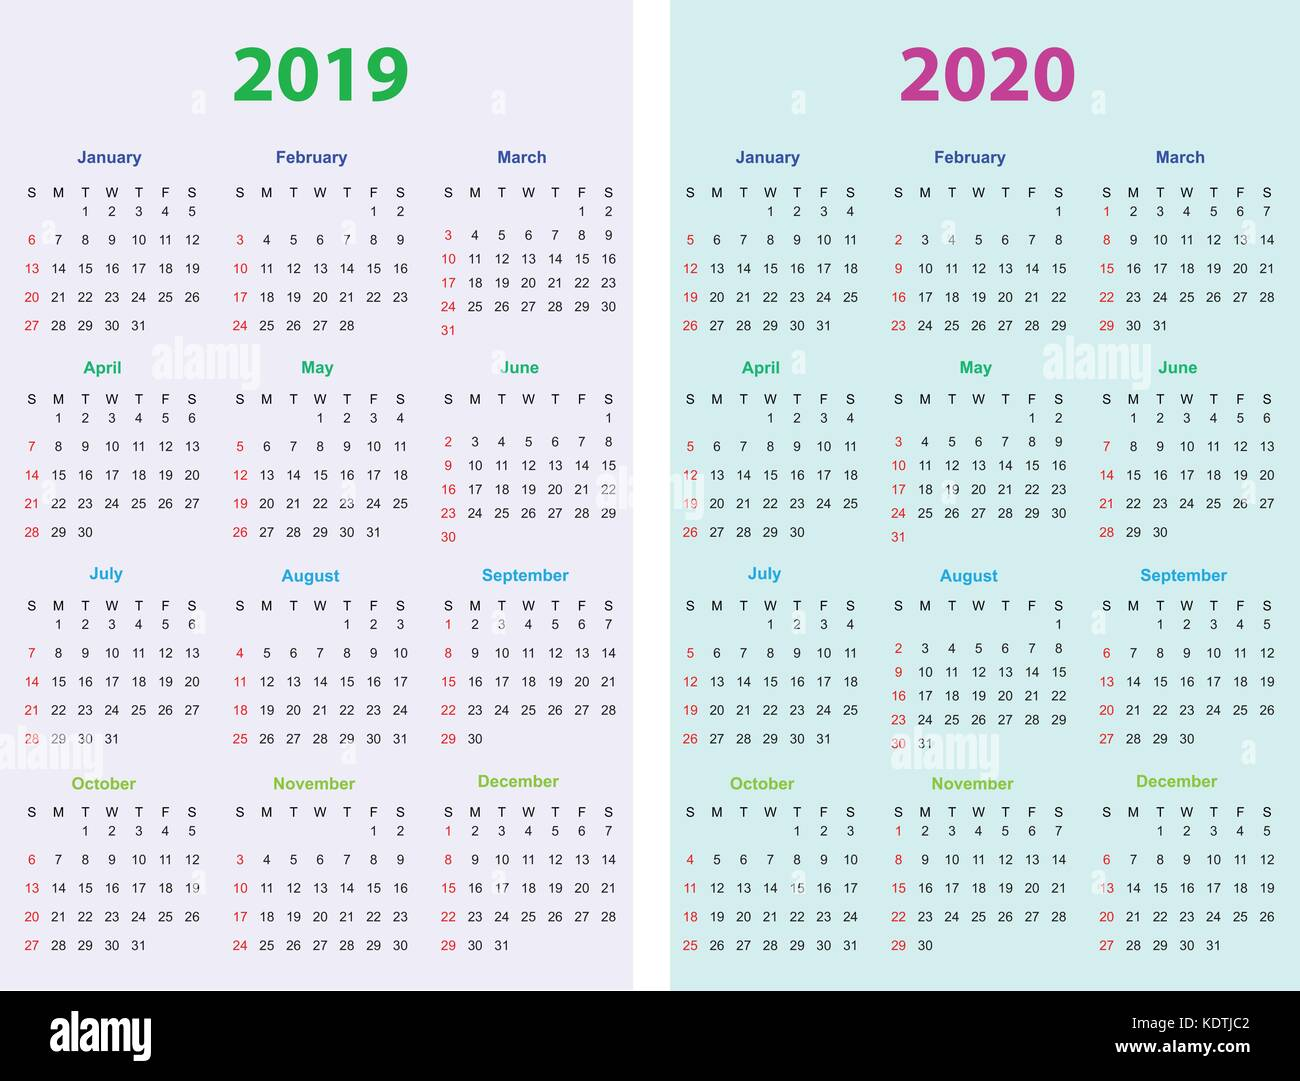 Calendrier Annuel 2020 2020.Calendar Design 2019 2020 Stock Vector Art Illustration